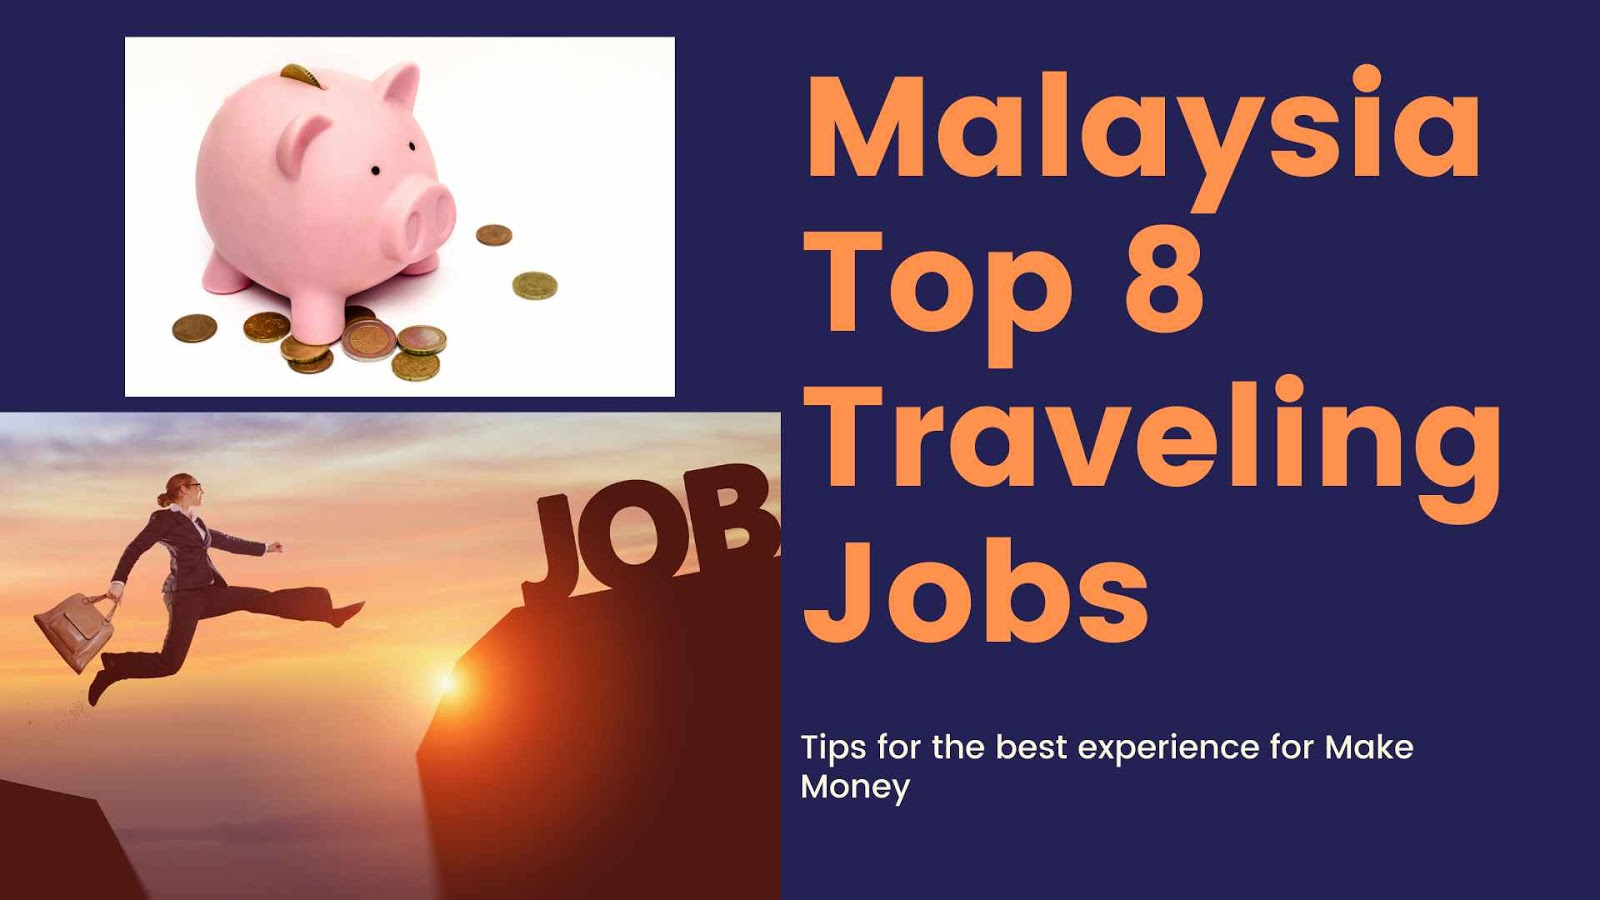 Do you ever dream of traveling to distant countries? Surely, most of us do. Unfortunately, we let go this dream because of several reasons, especially money. But what if you could get a Malaysia traveling jobs and get paid to travel the world?